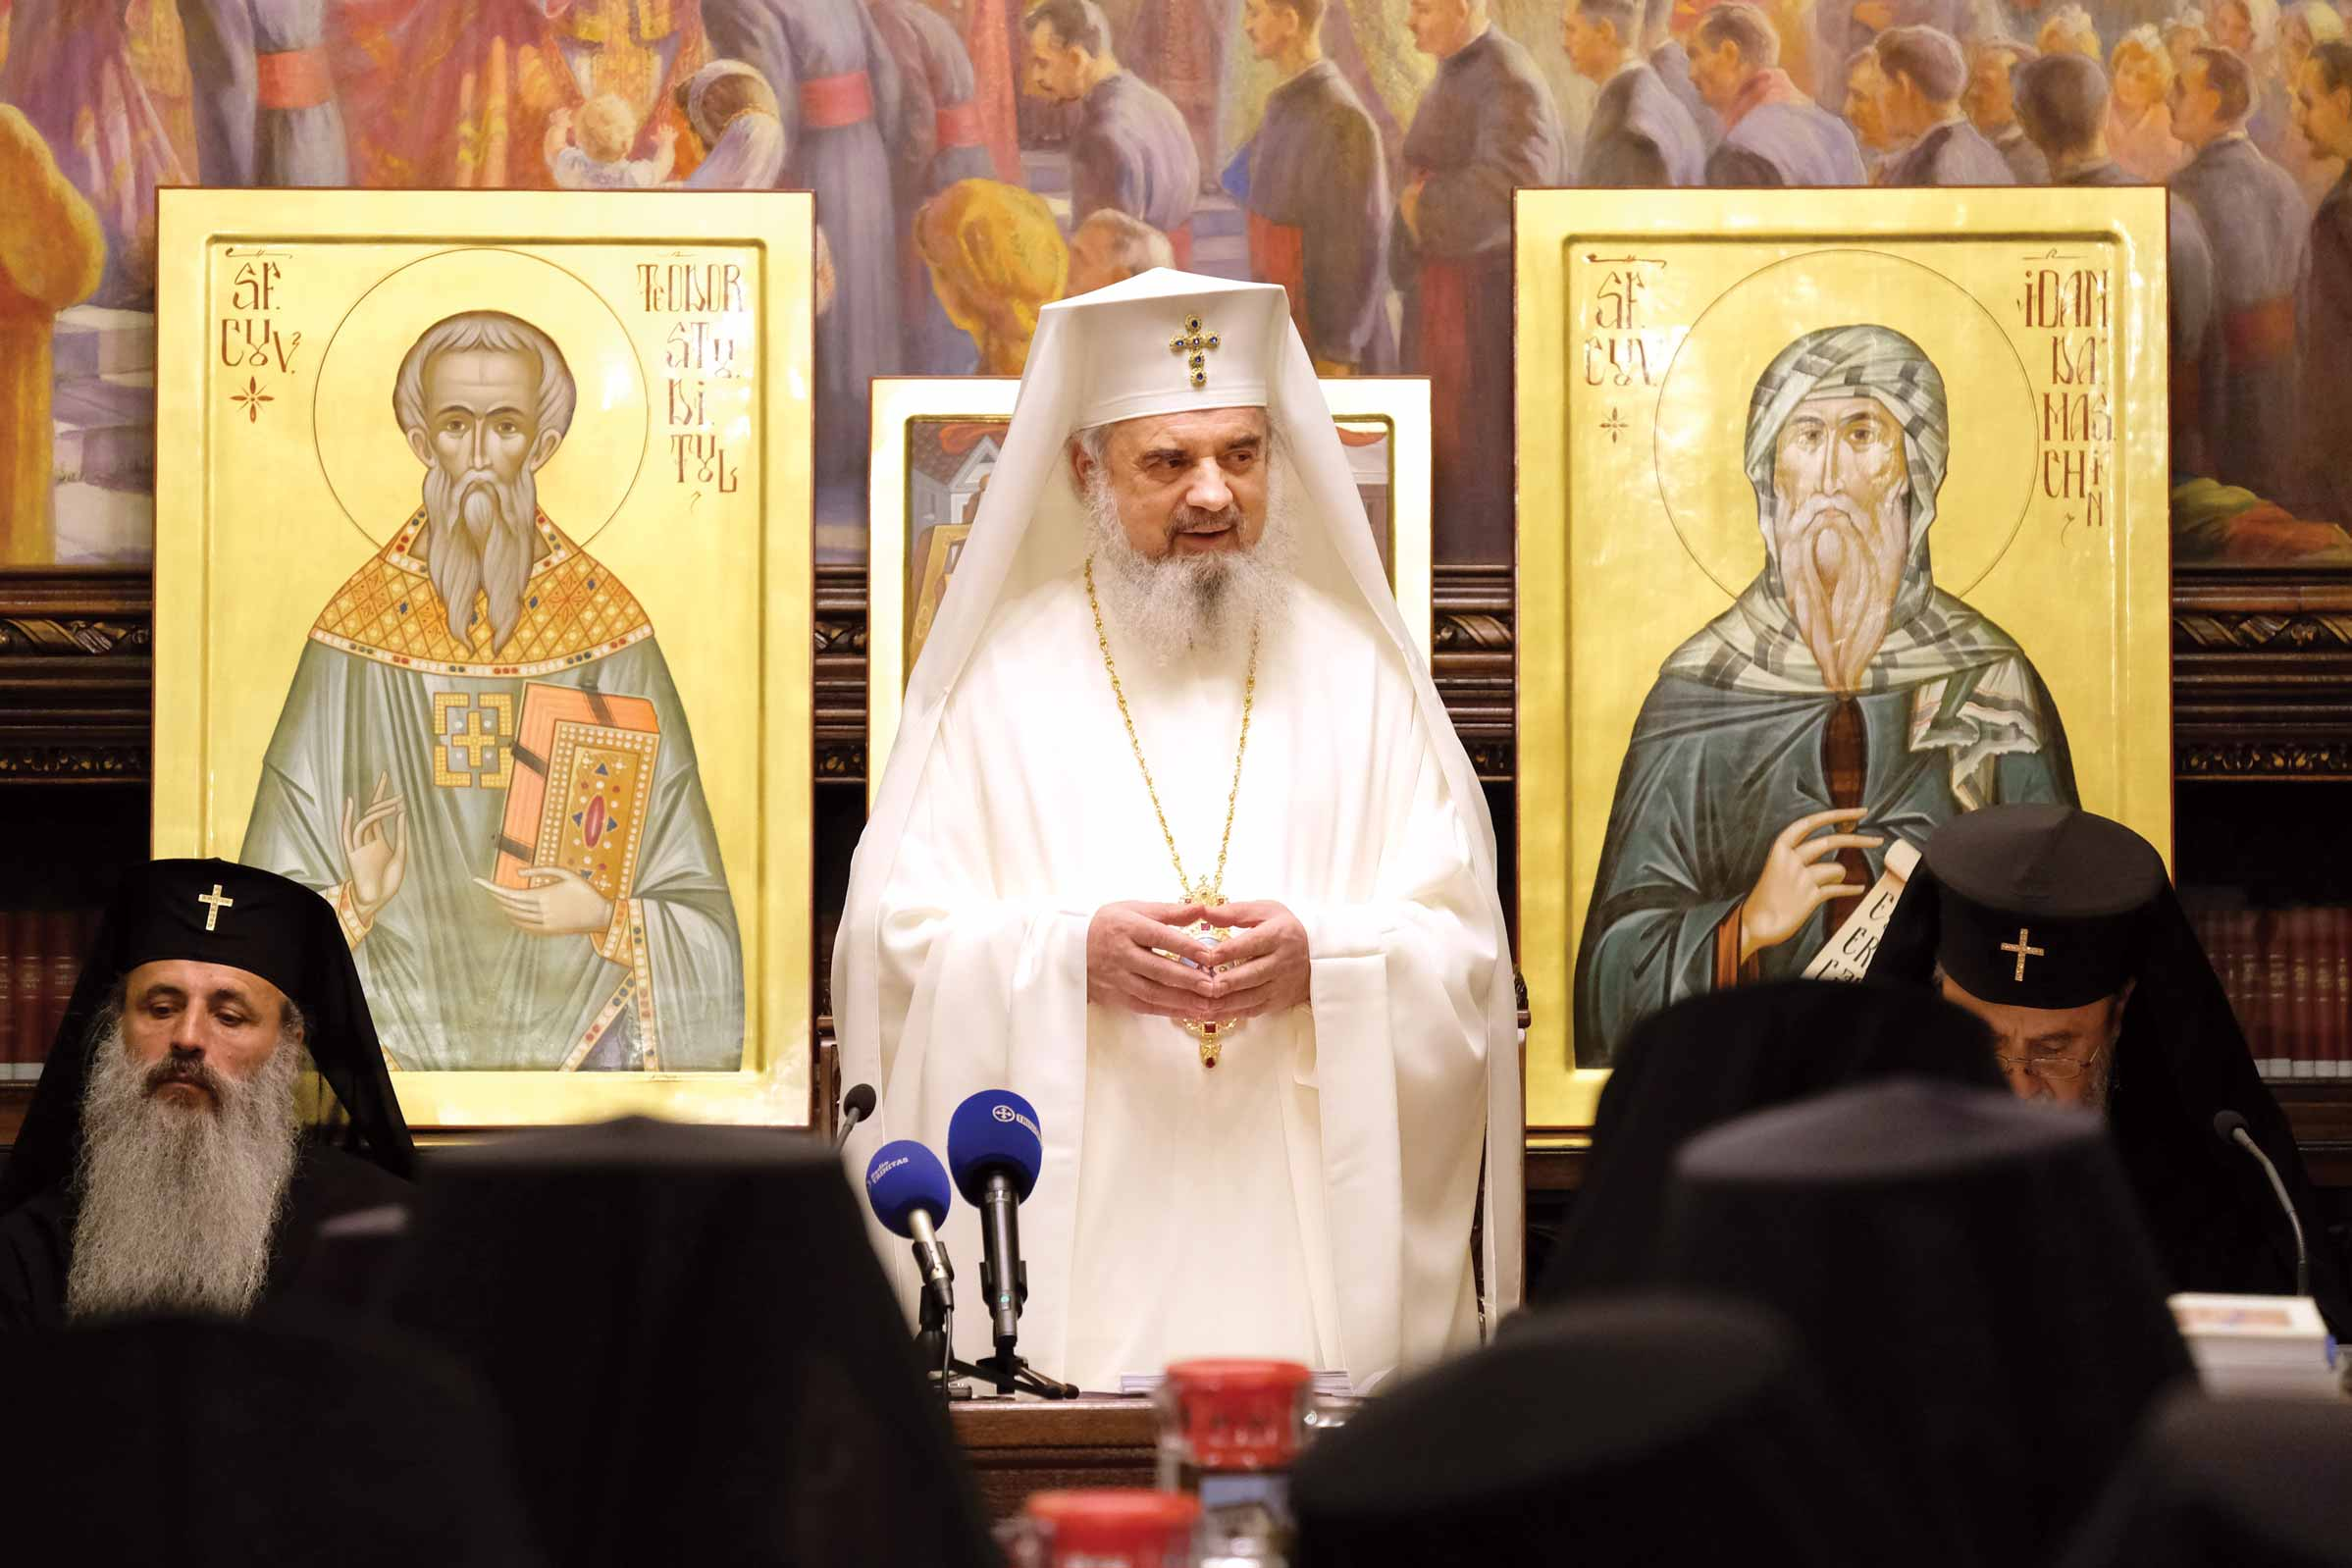 Agenda Preafericitului Părinte Daniel, Patriarhul Bisericii Ortodoxe Române / The Diary of His Beatitude Daniel,  Patriarch of the Romanian Orthodox Church